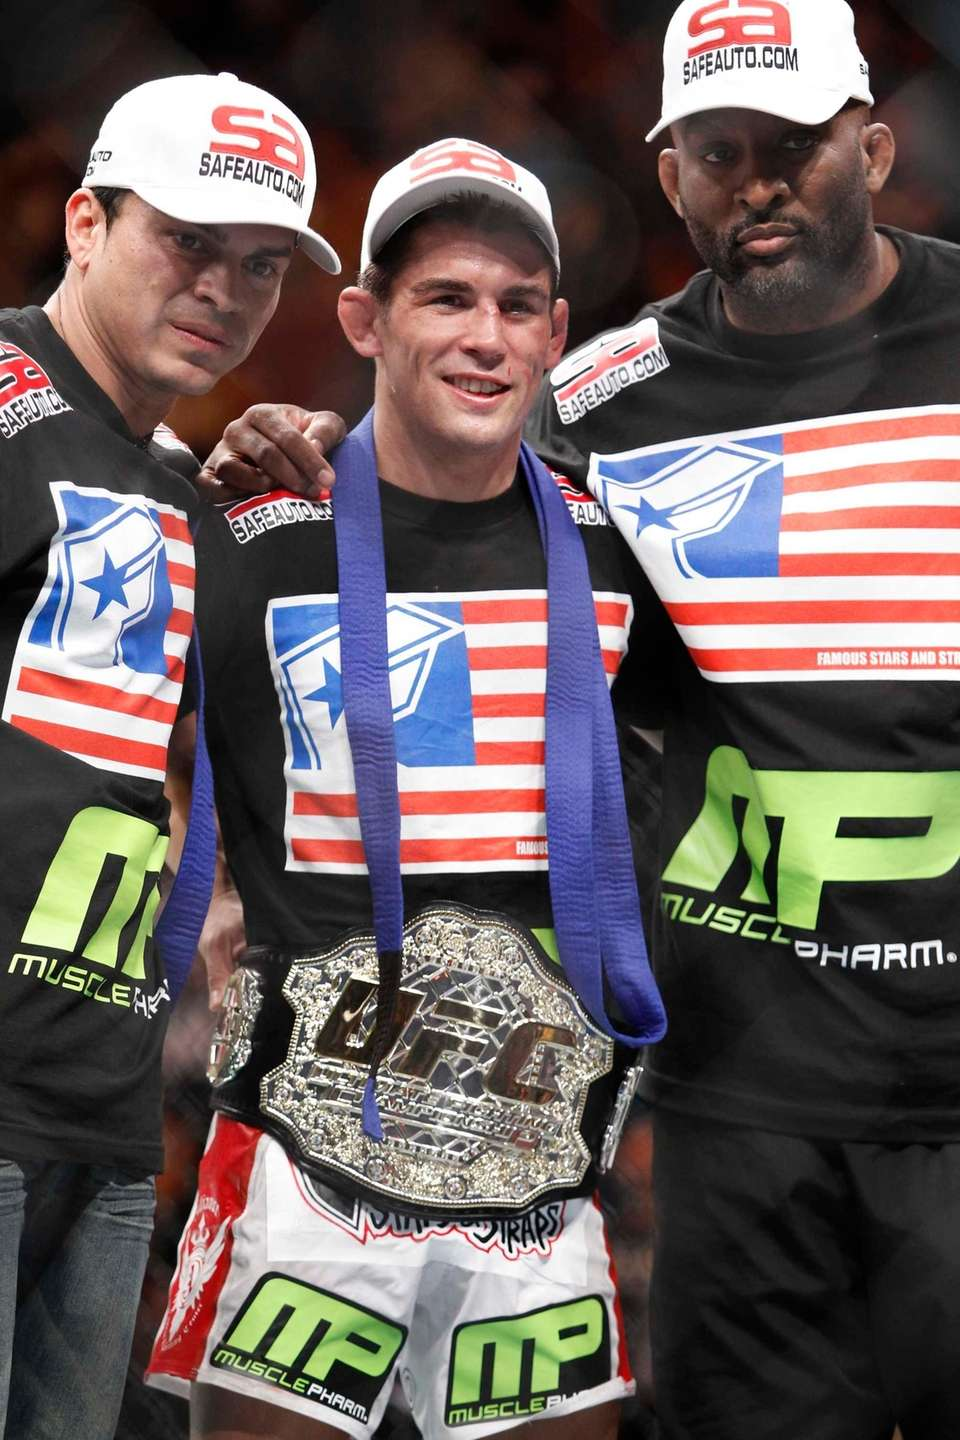 Successful title defenses: 2 Cruz was named the